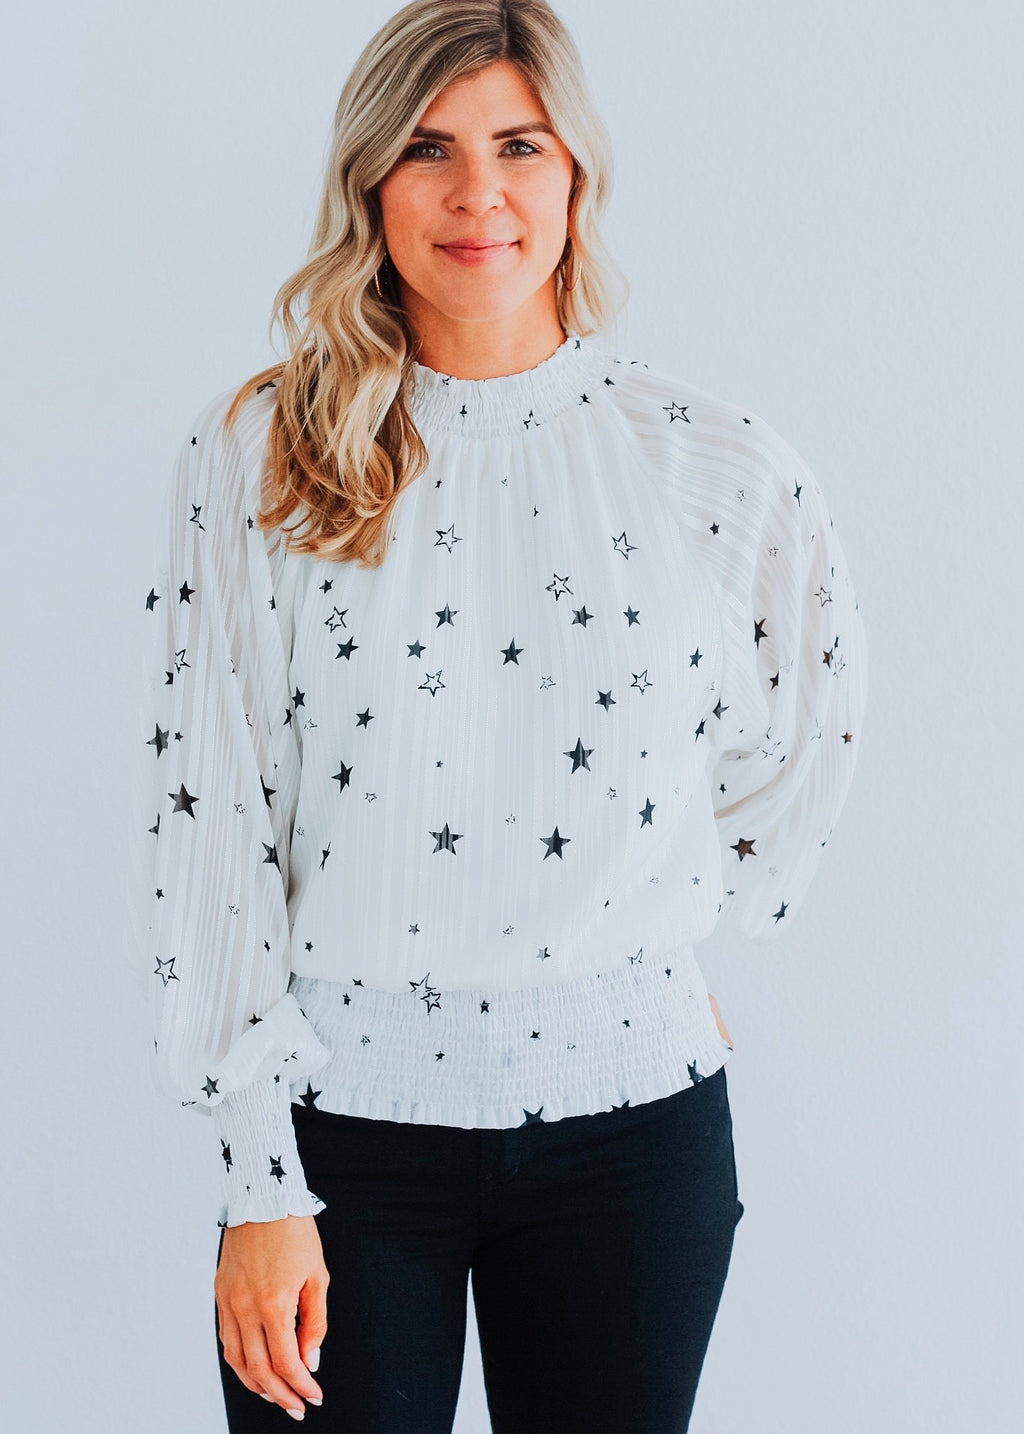 Star Struck Smocked Top